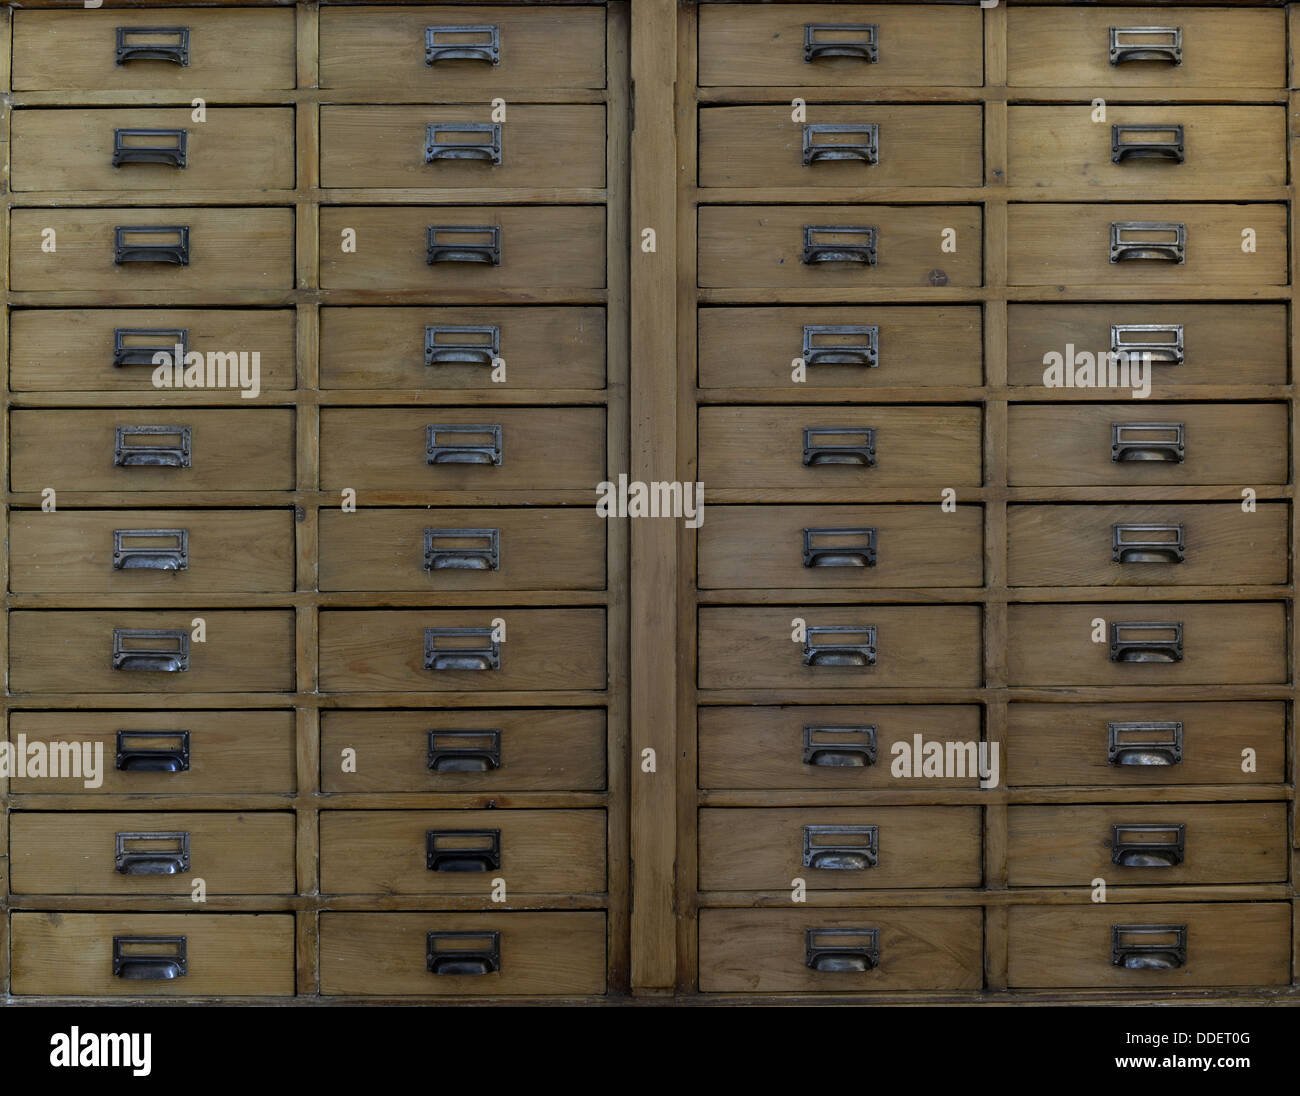 Cabinet with wooden drawers - Stock Image